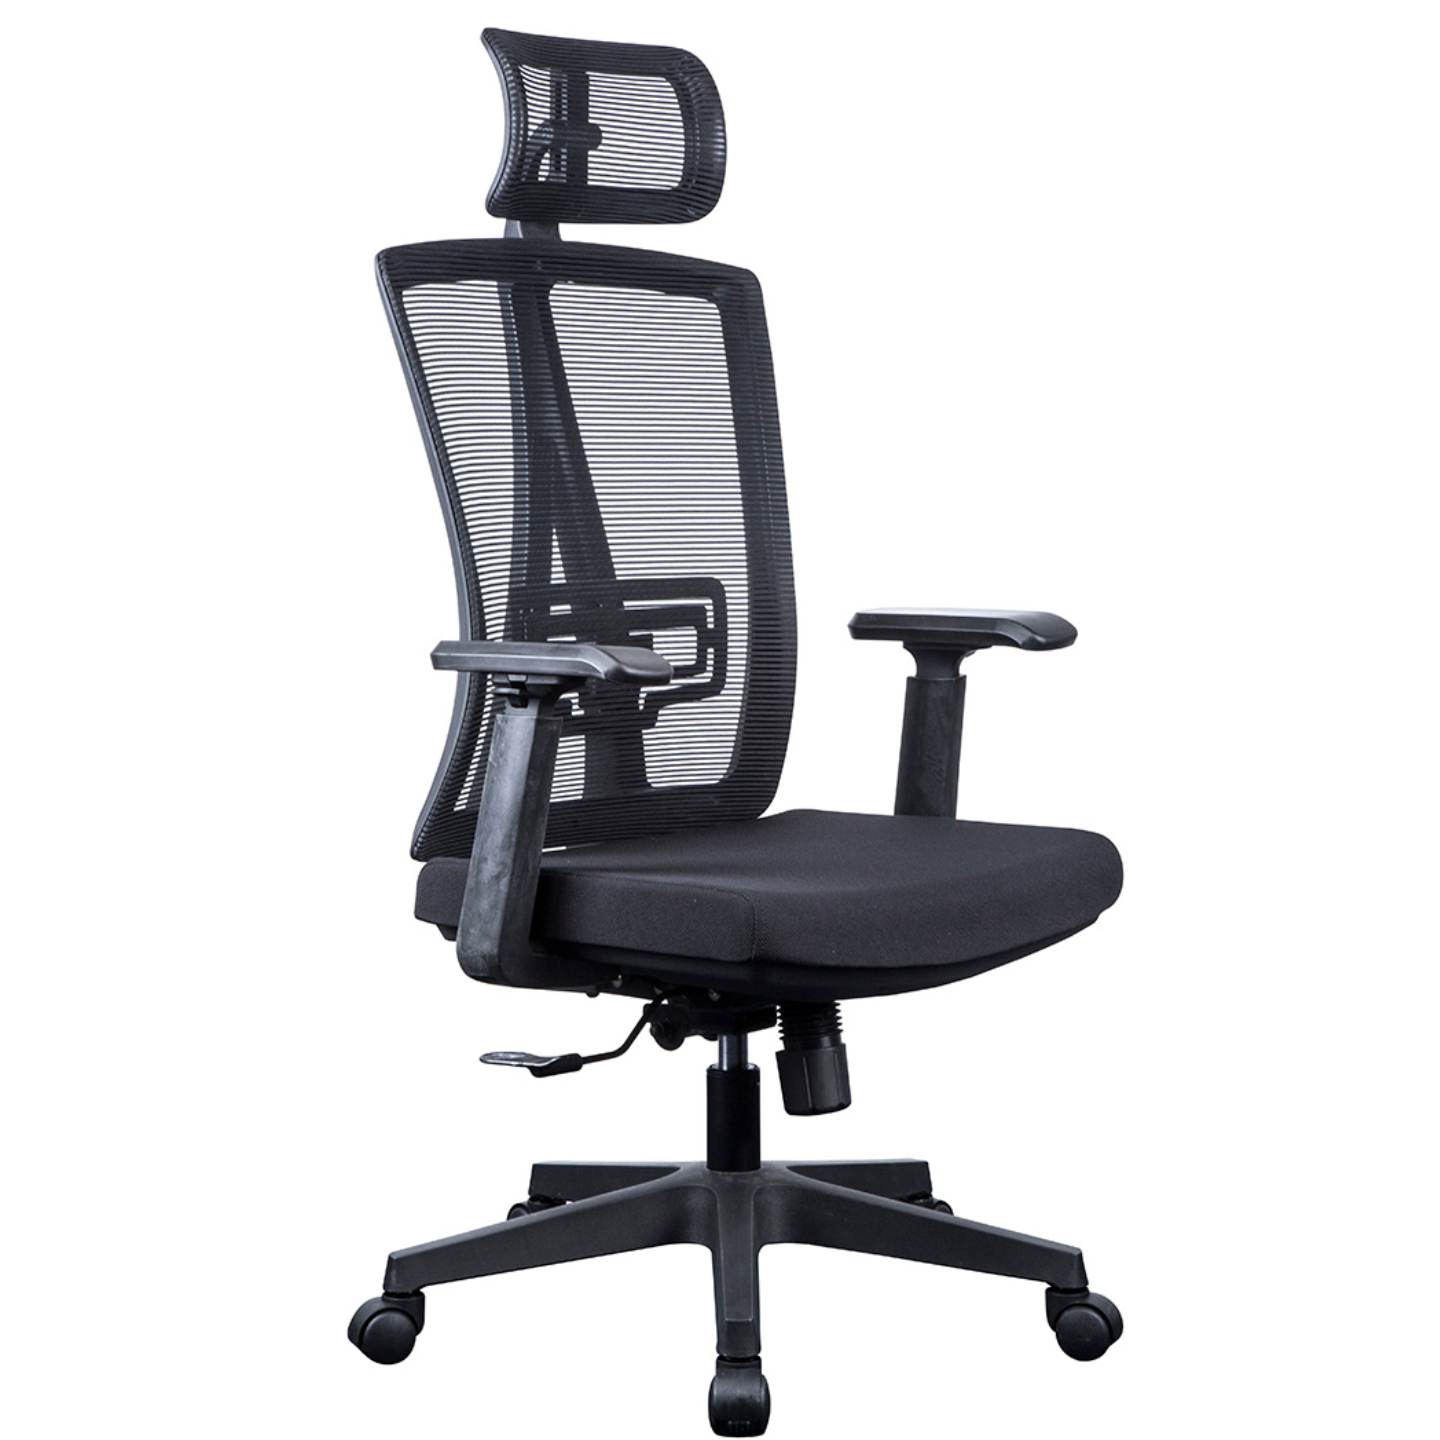 OPAL Mesh Ergonomic Chair